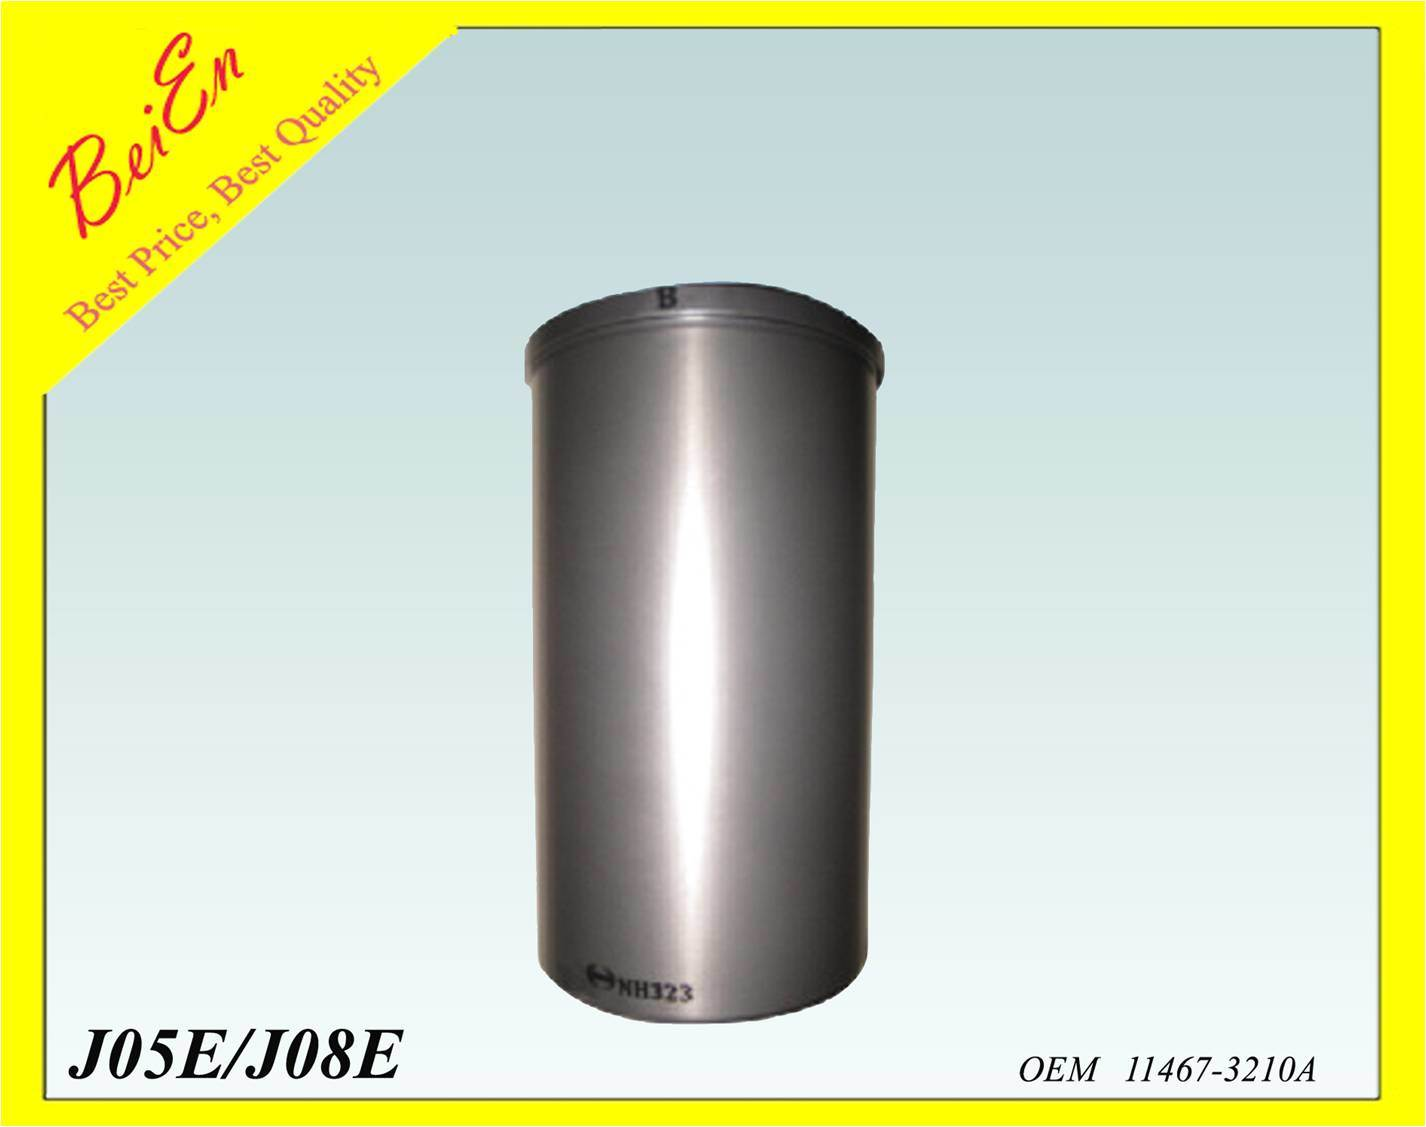 Cylinder Liner for Excavator Engine J05E/J08E (Part number: 11467-3210A)